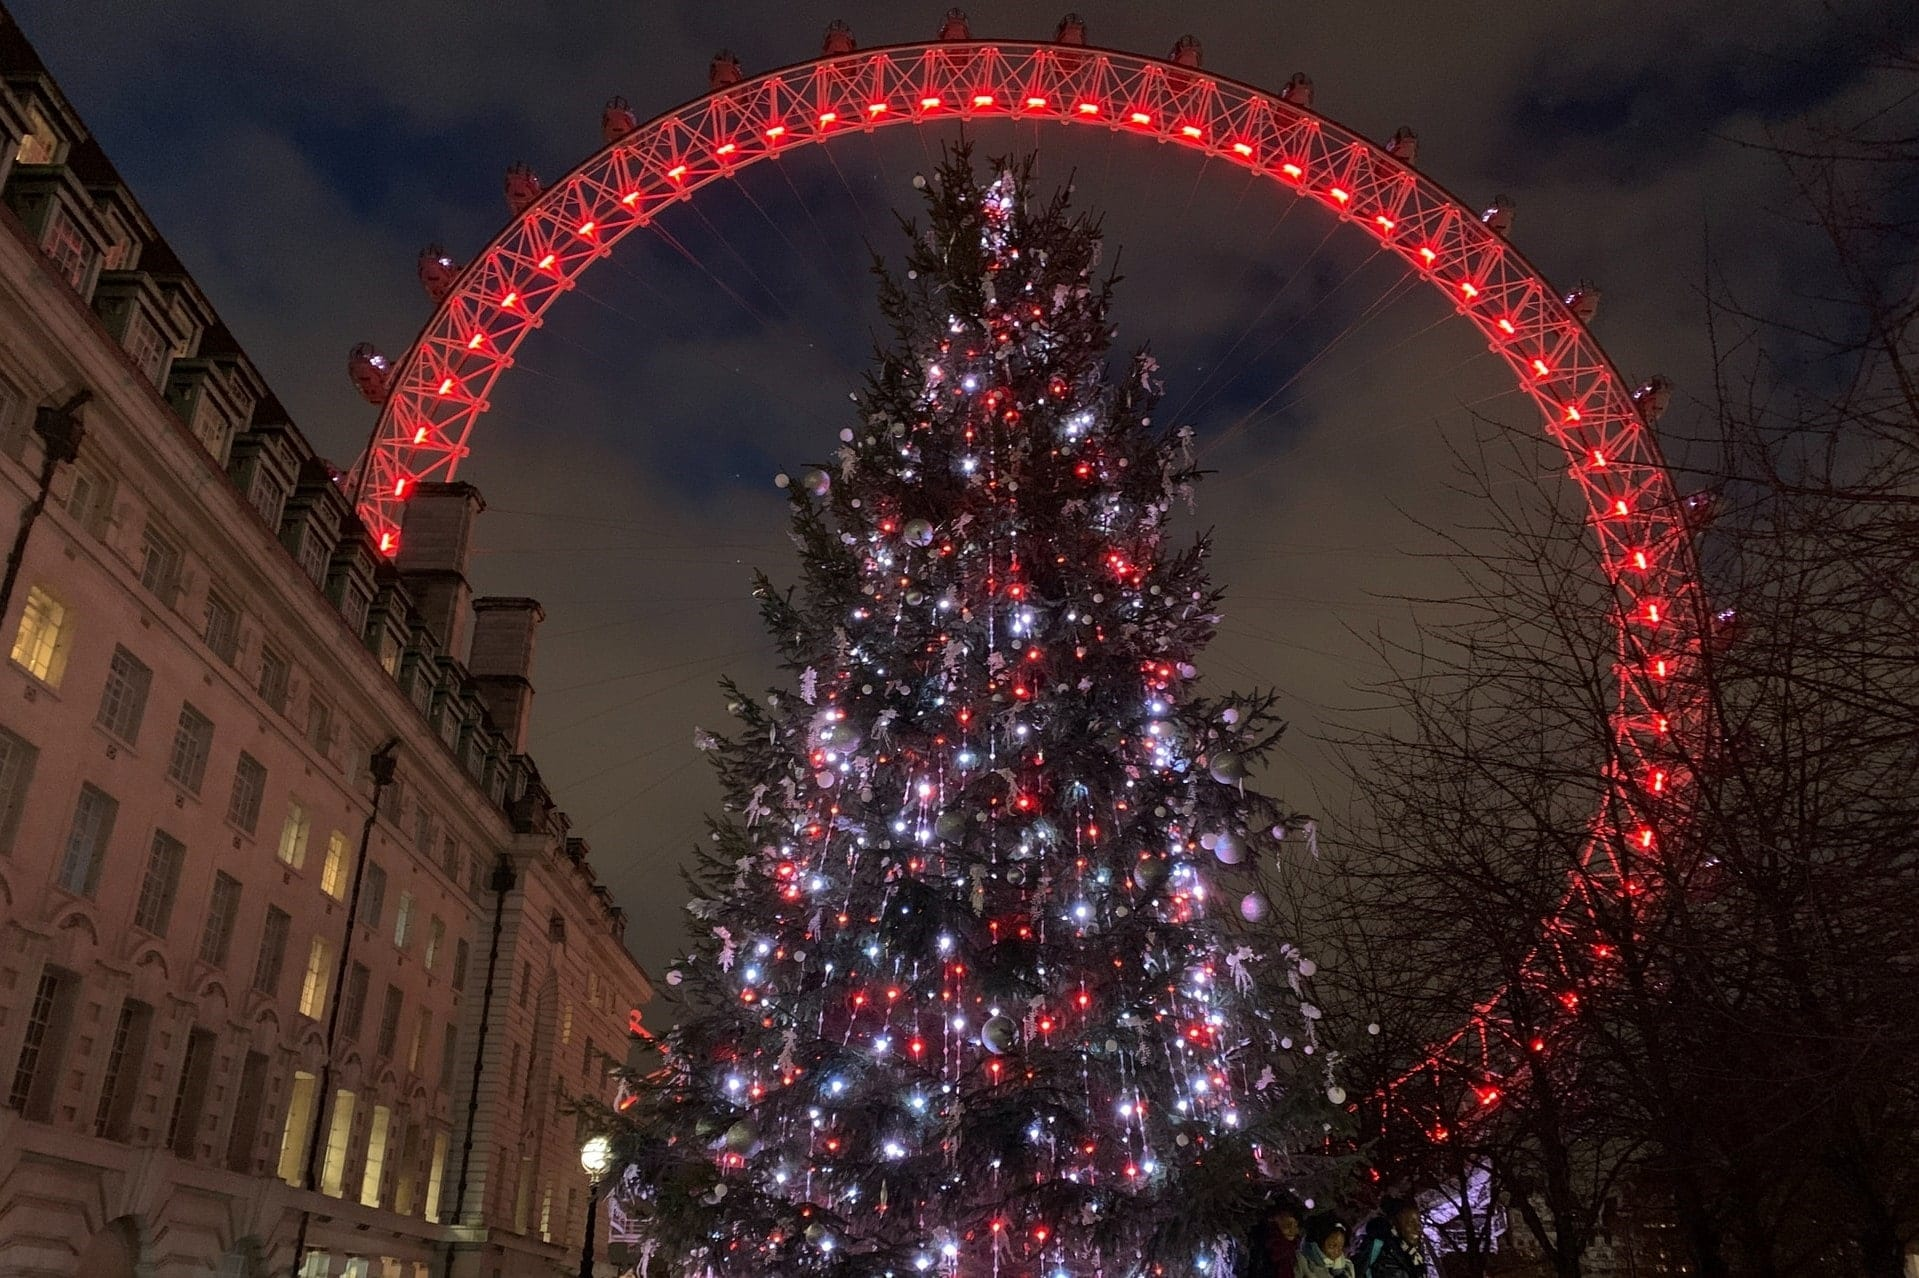 lit-up-christmas-tree-in-front-of-london-eye-at-night